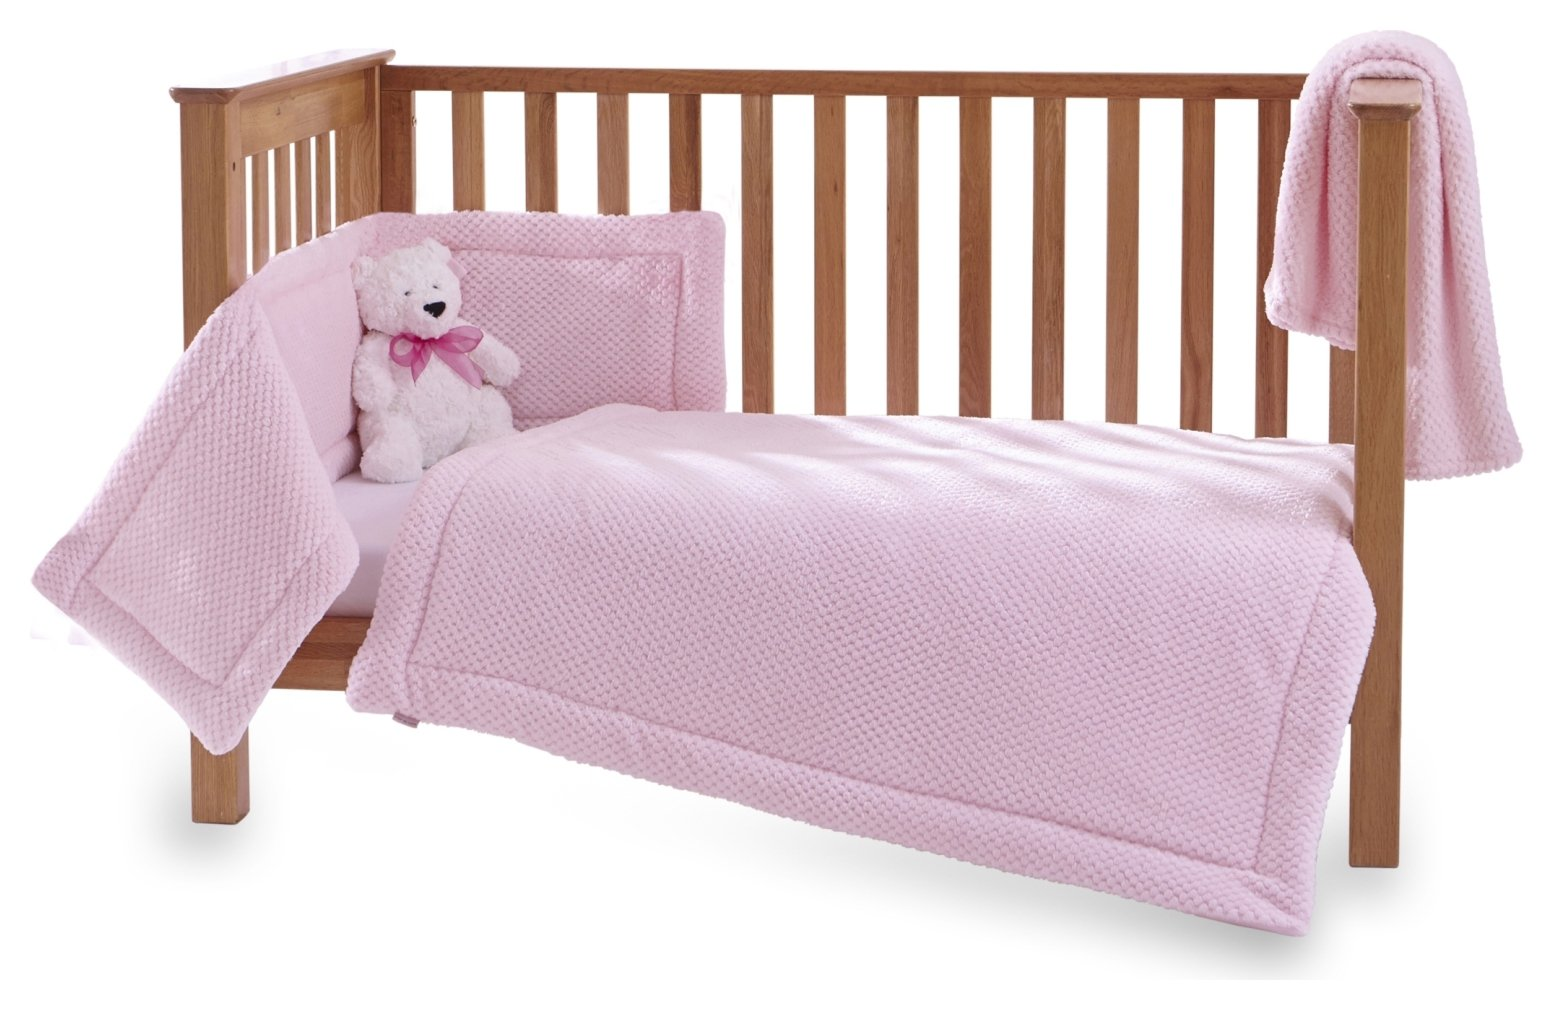 clair-de-lune-honeycomb-3-piece-cotcot-bed-set-pink